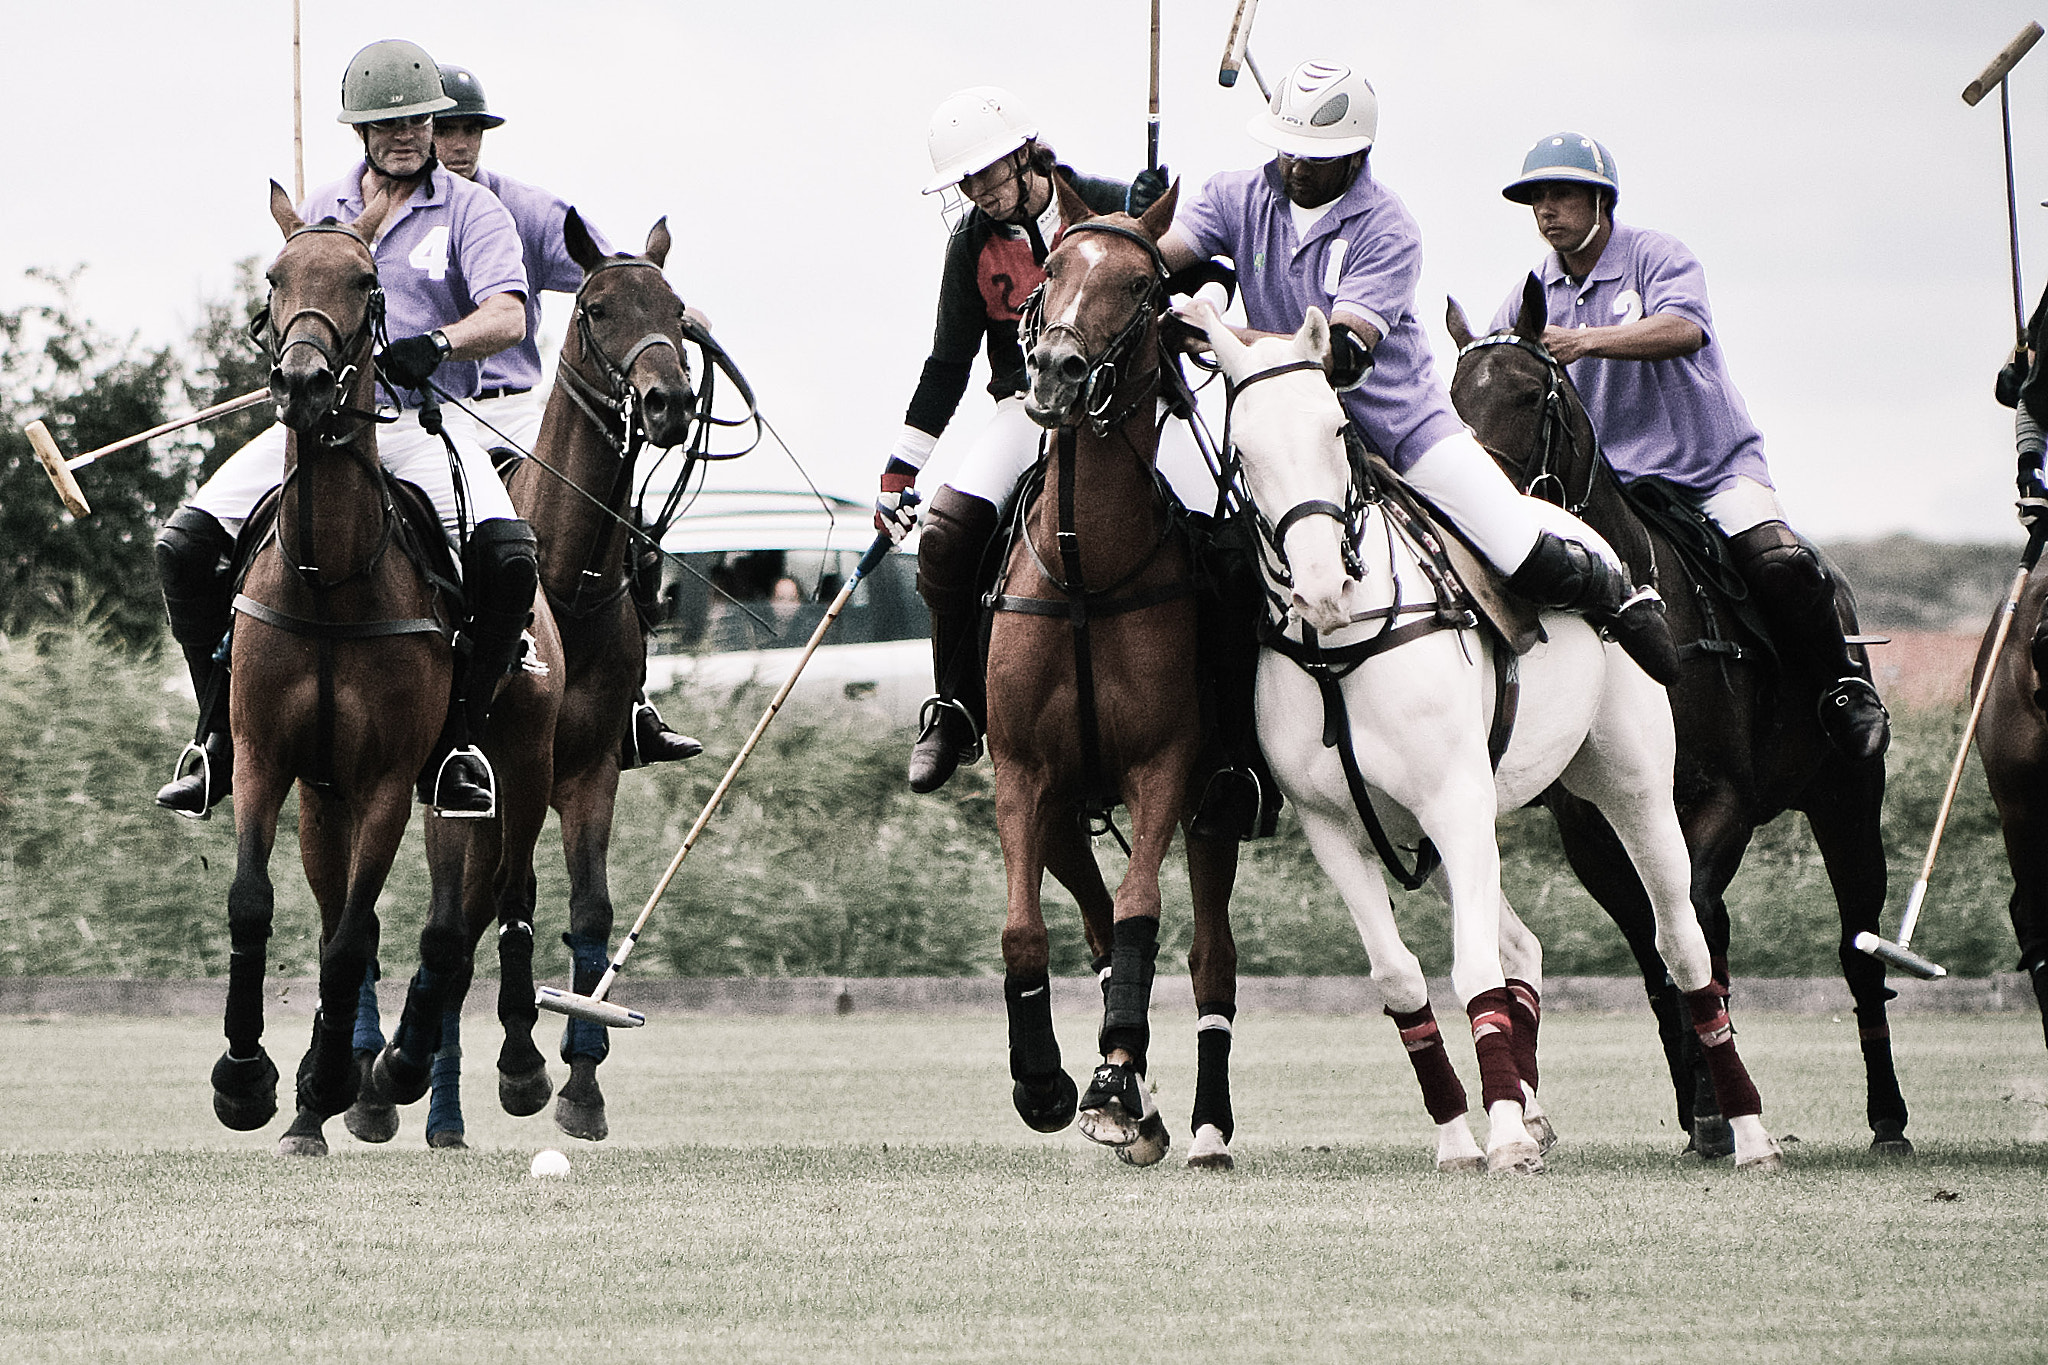 Photograph Poloaction by M. Lappe on 500px